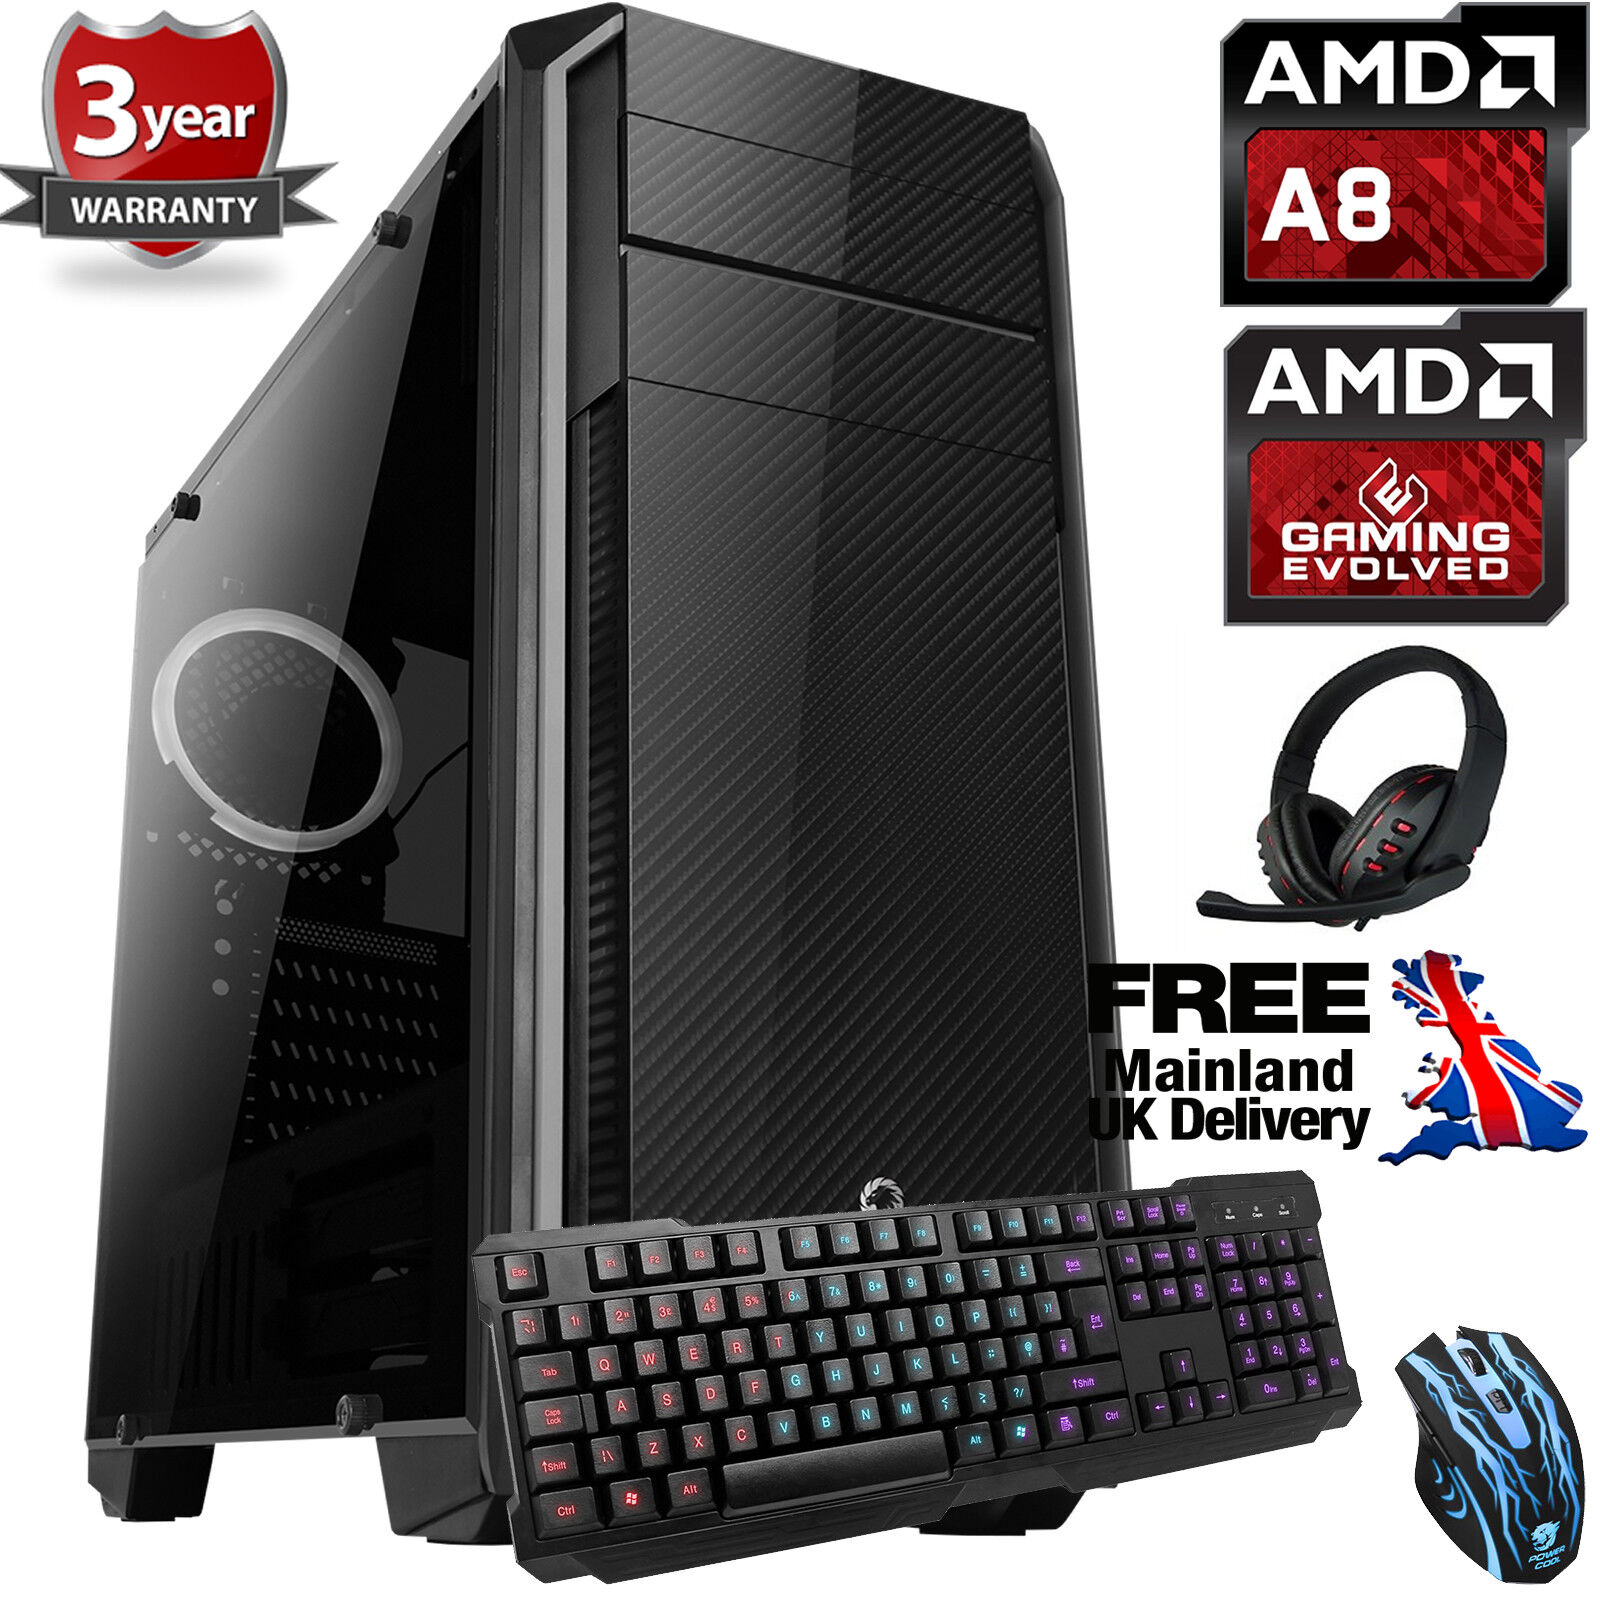 Computer Games - OCHW Ultra Fast AMD Quad Core Bundle8 8GB 1TB Gaming PC Computer Windows 10 CA